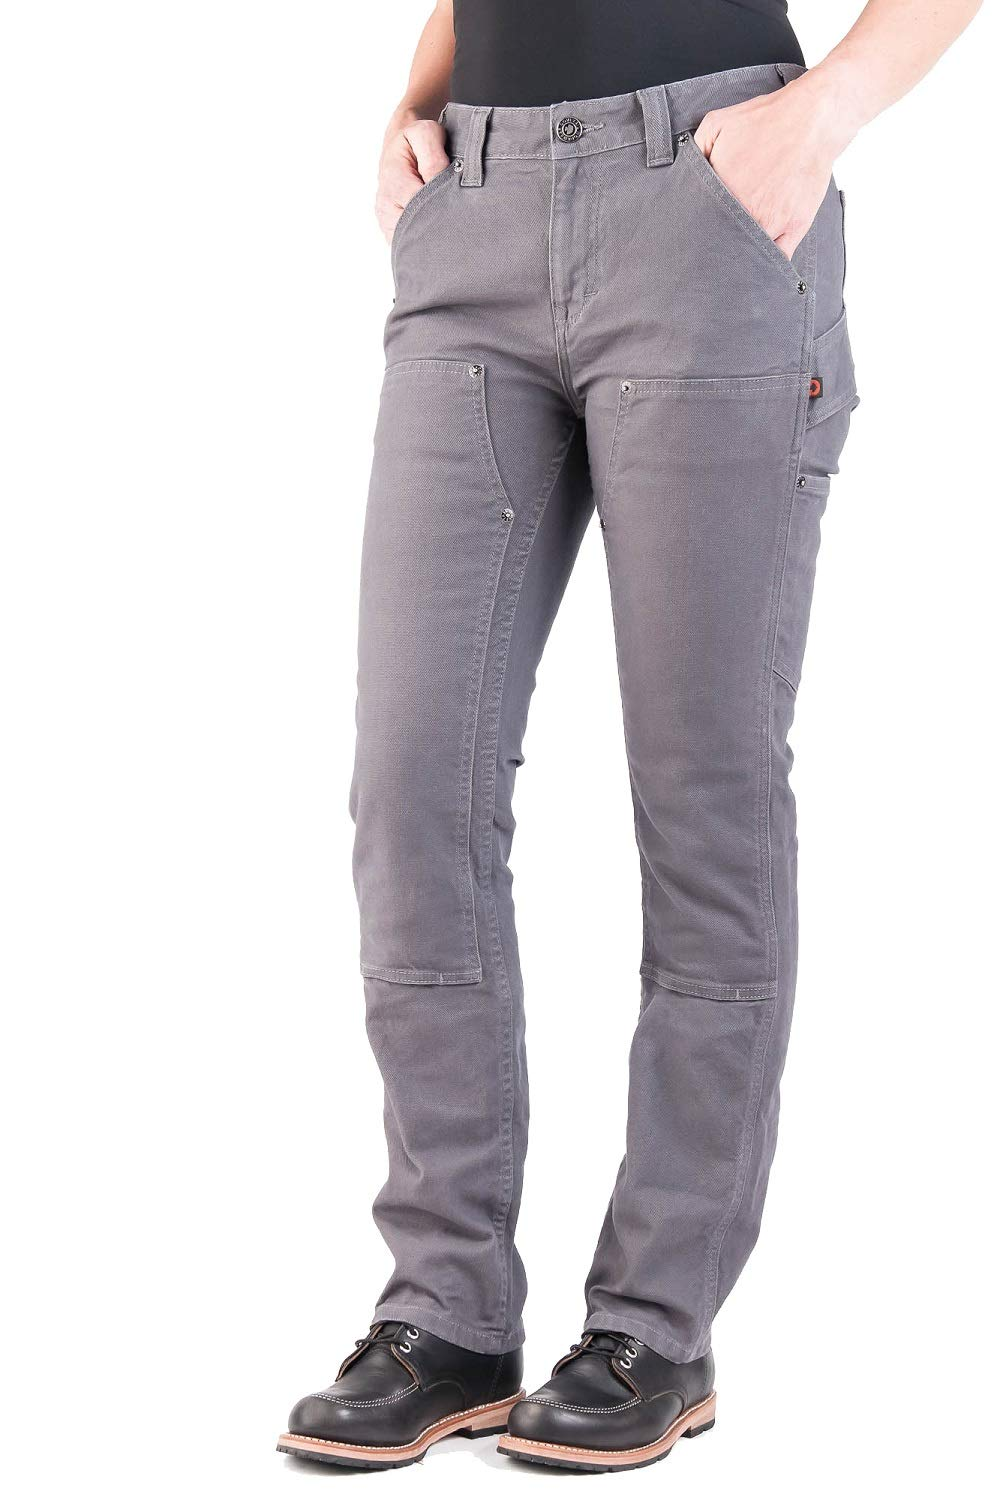 """Dovetail Workwear Utility Pants for Women - Maven Slim Fit Stretch Cargo Pant Dark Grey Canvas Size 14 28"""" Length"""